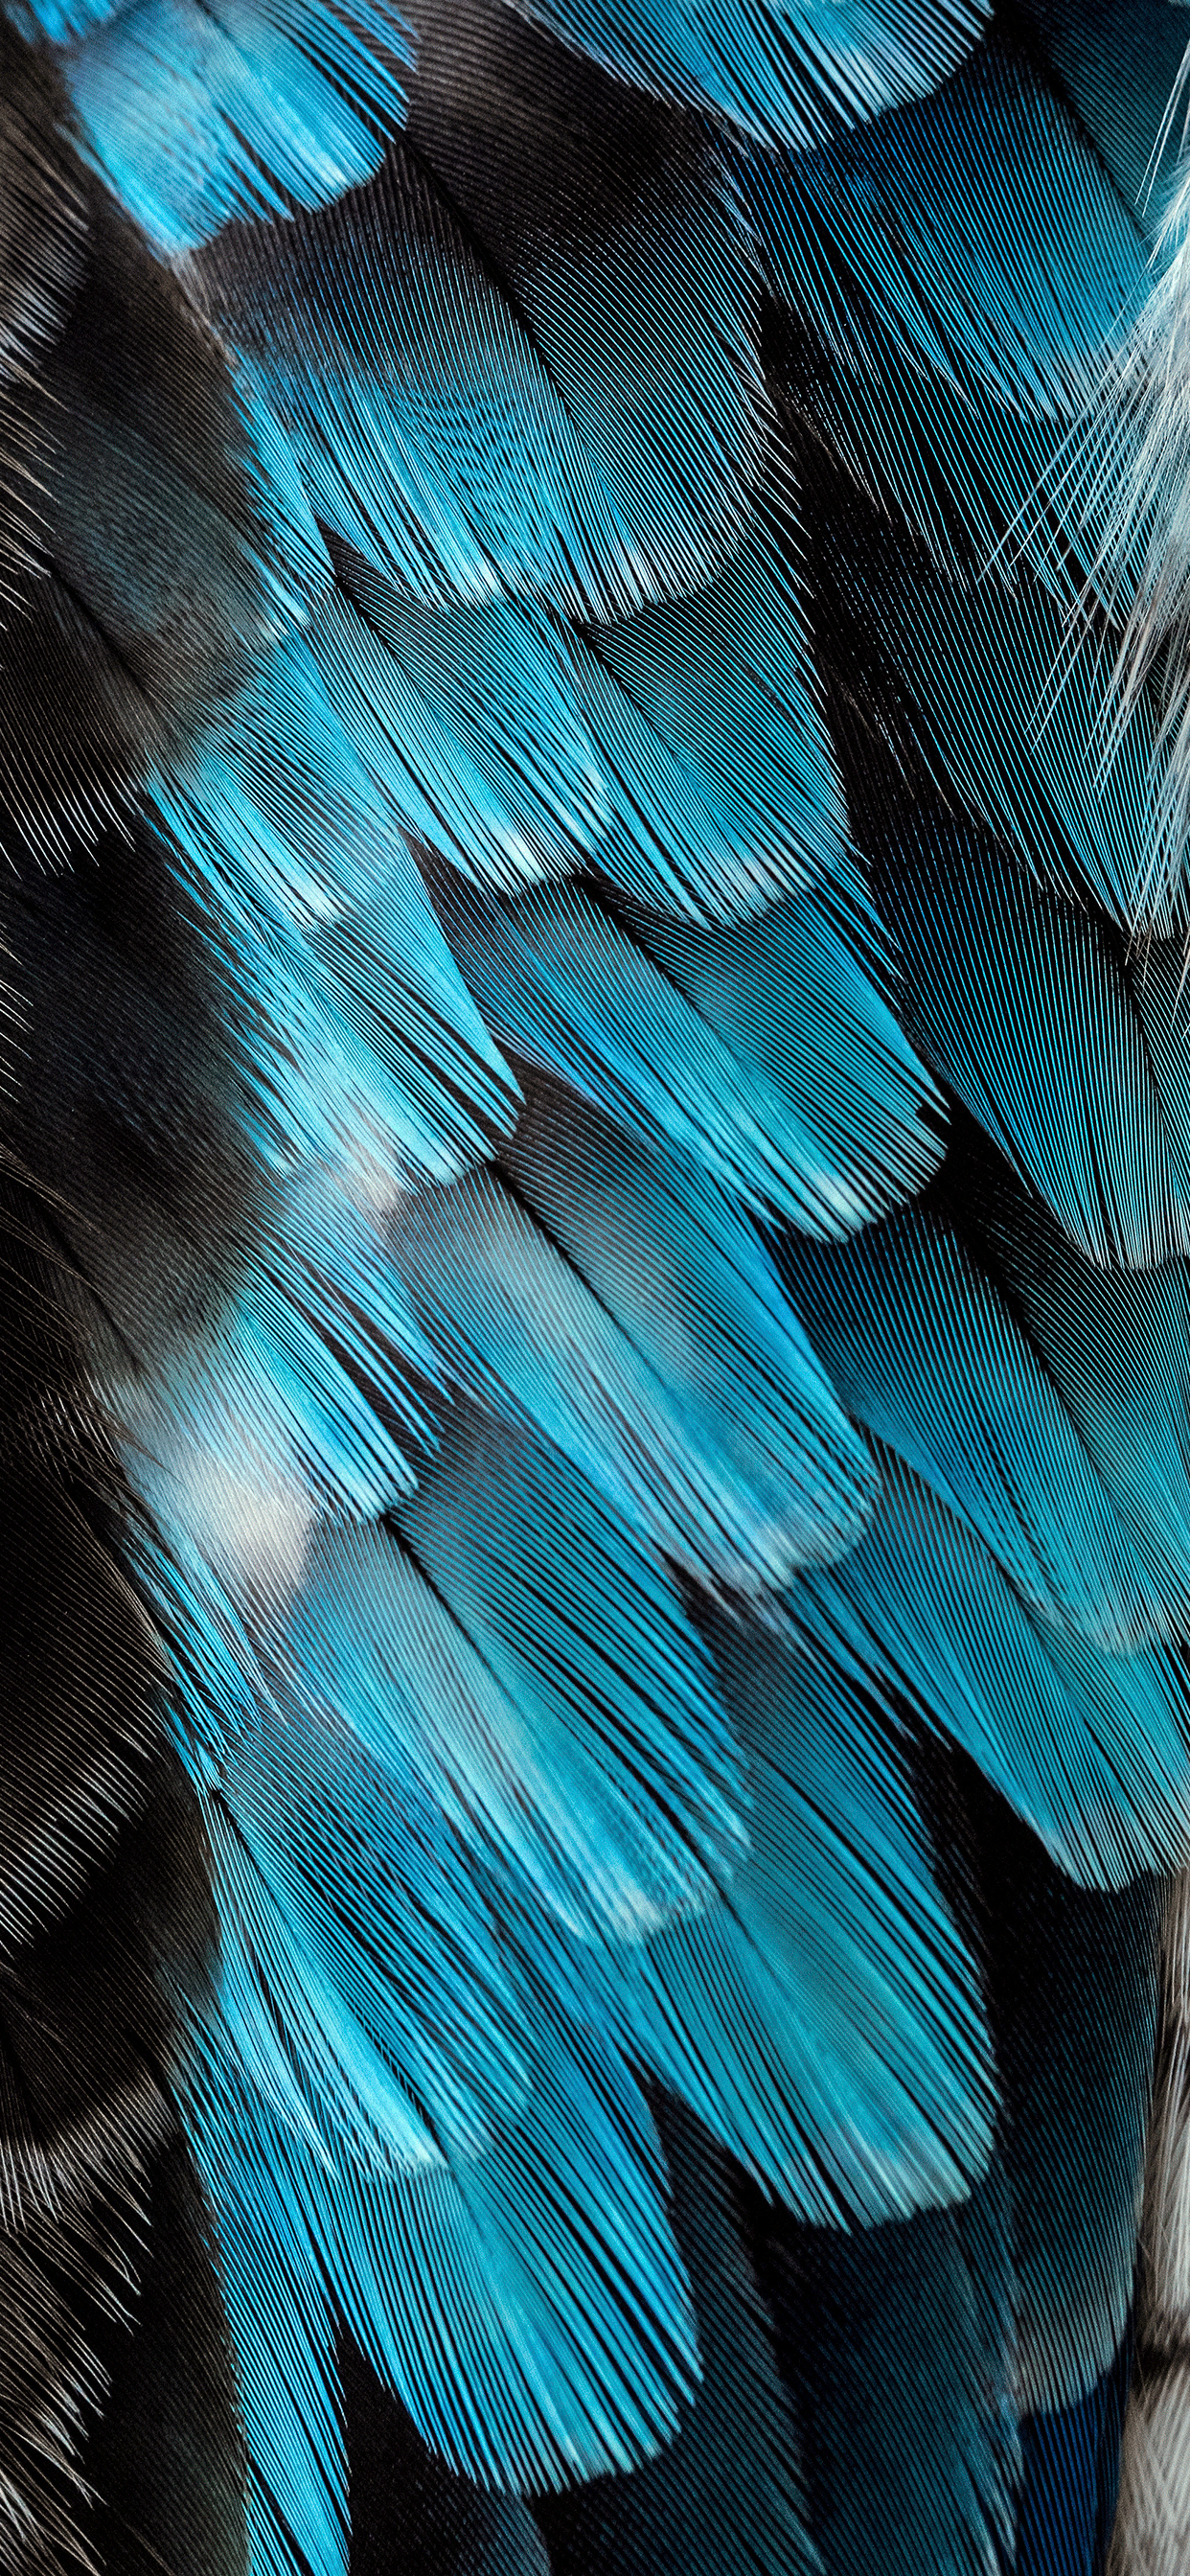 iPhone wallpaper feathers blue black Fonds d'écran iPhone du 19/02/2019